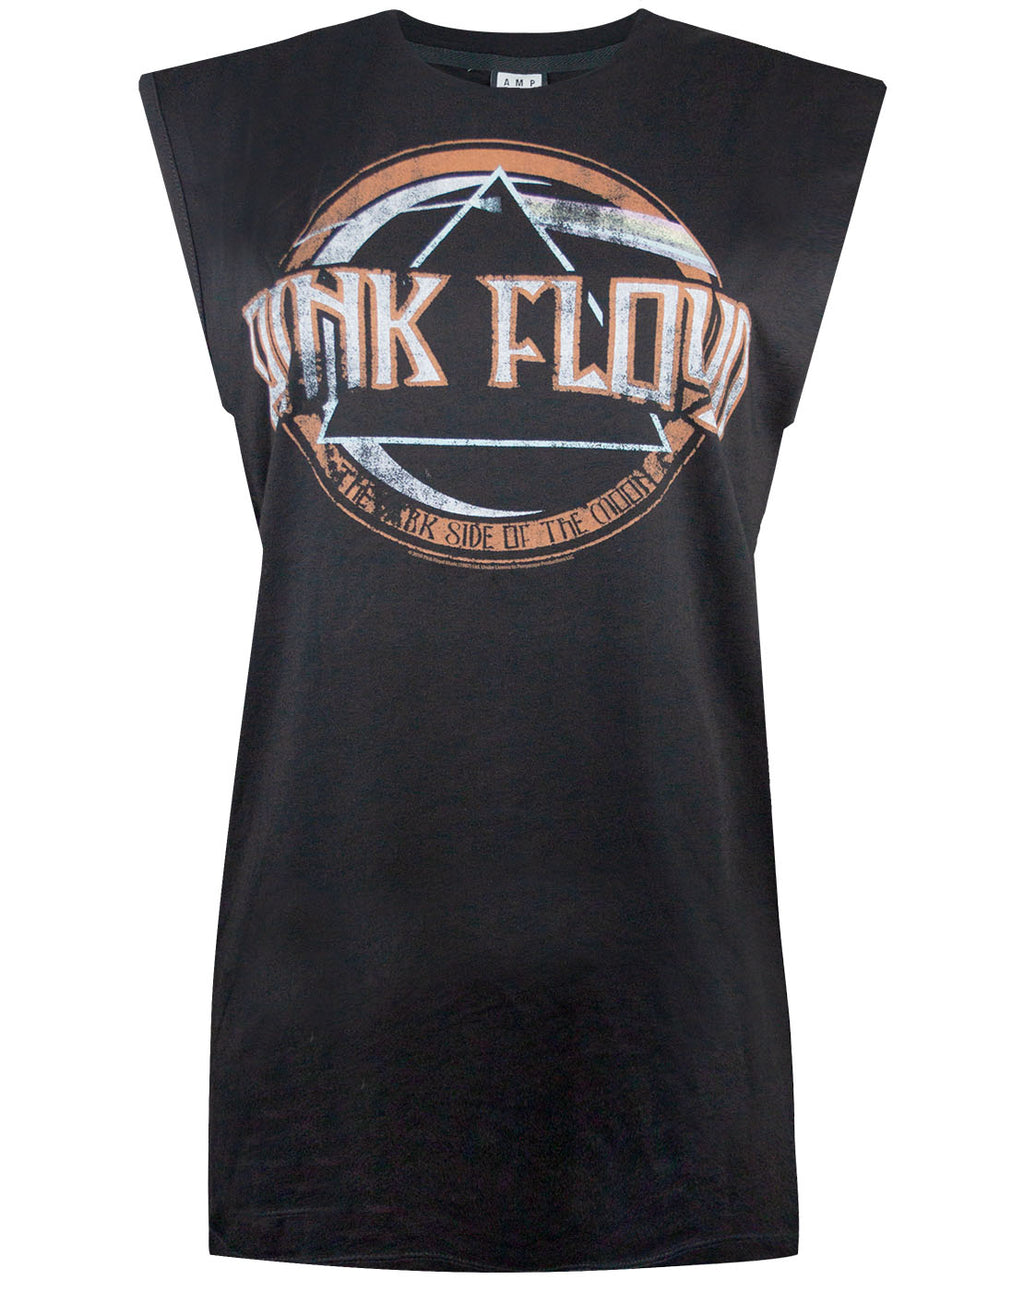 Amplified Pink Floyd On The Run Women's Sleeveless T-Shirt